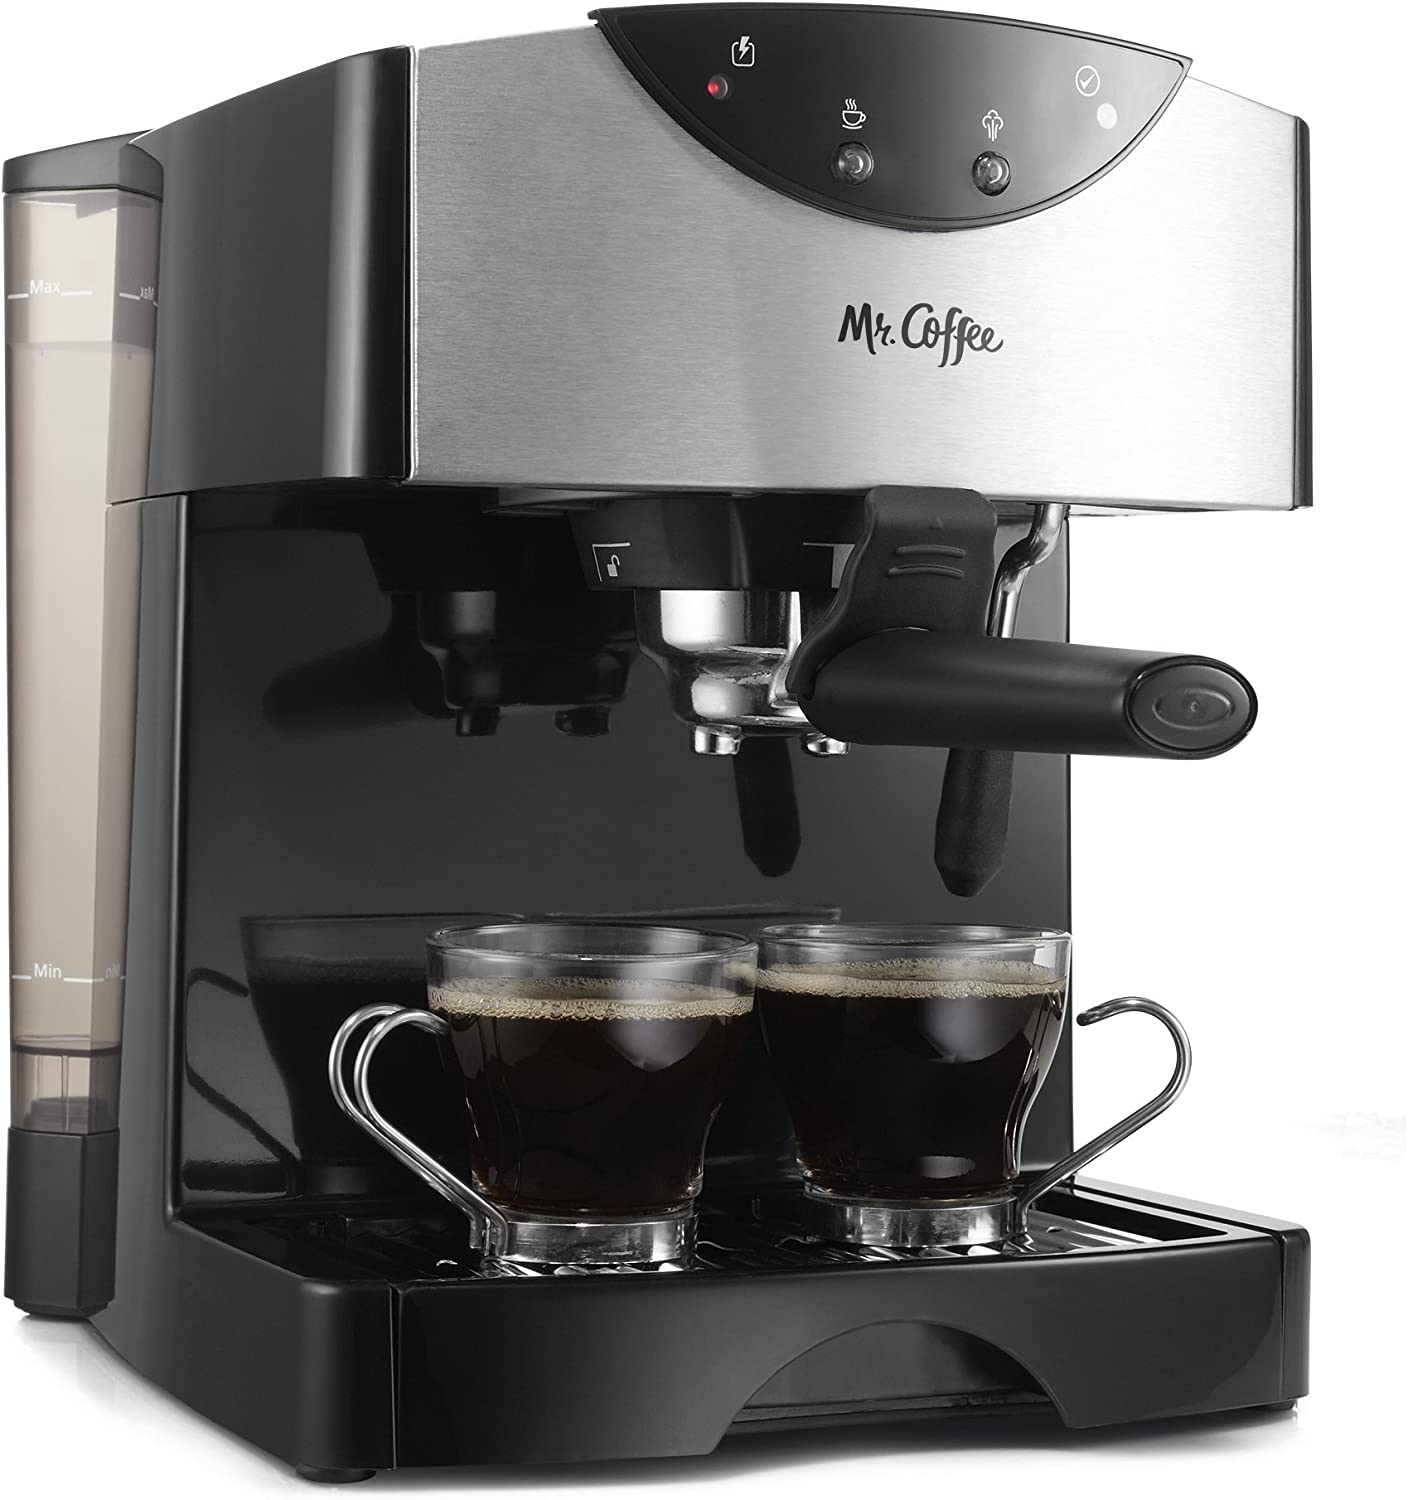 mr. coffee automatic dual shot espresso machine